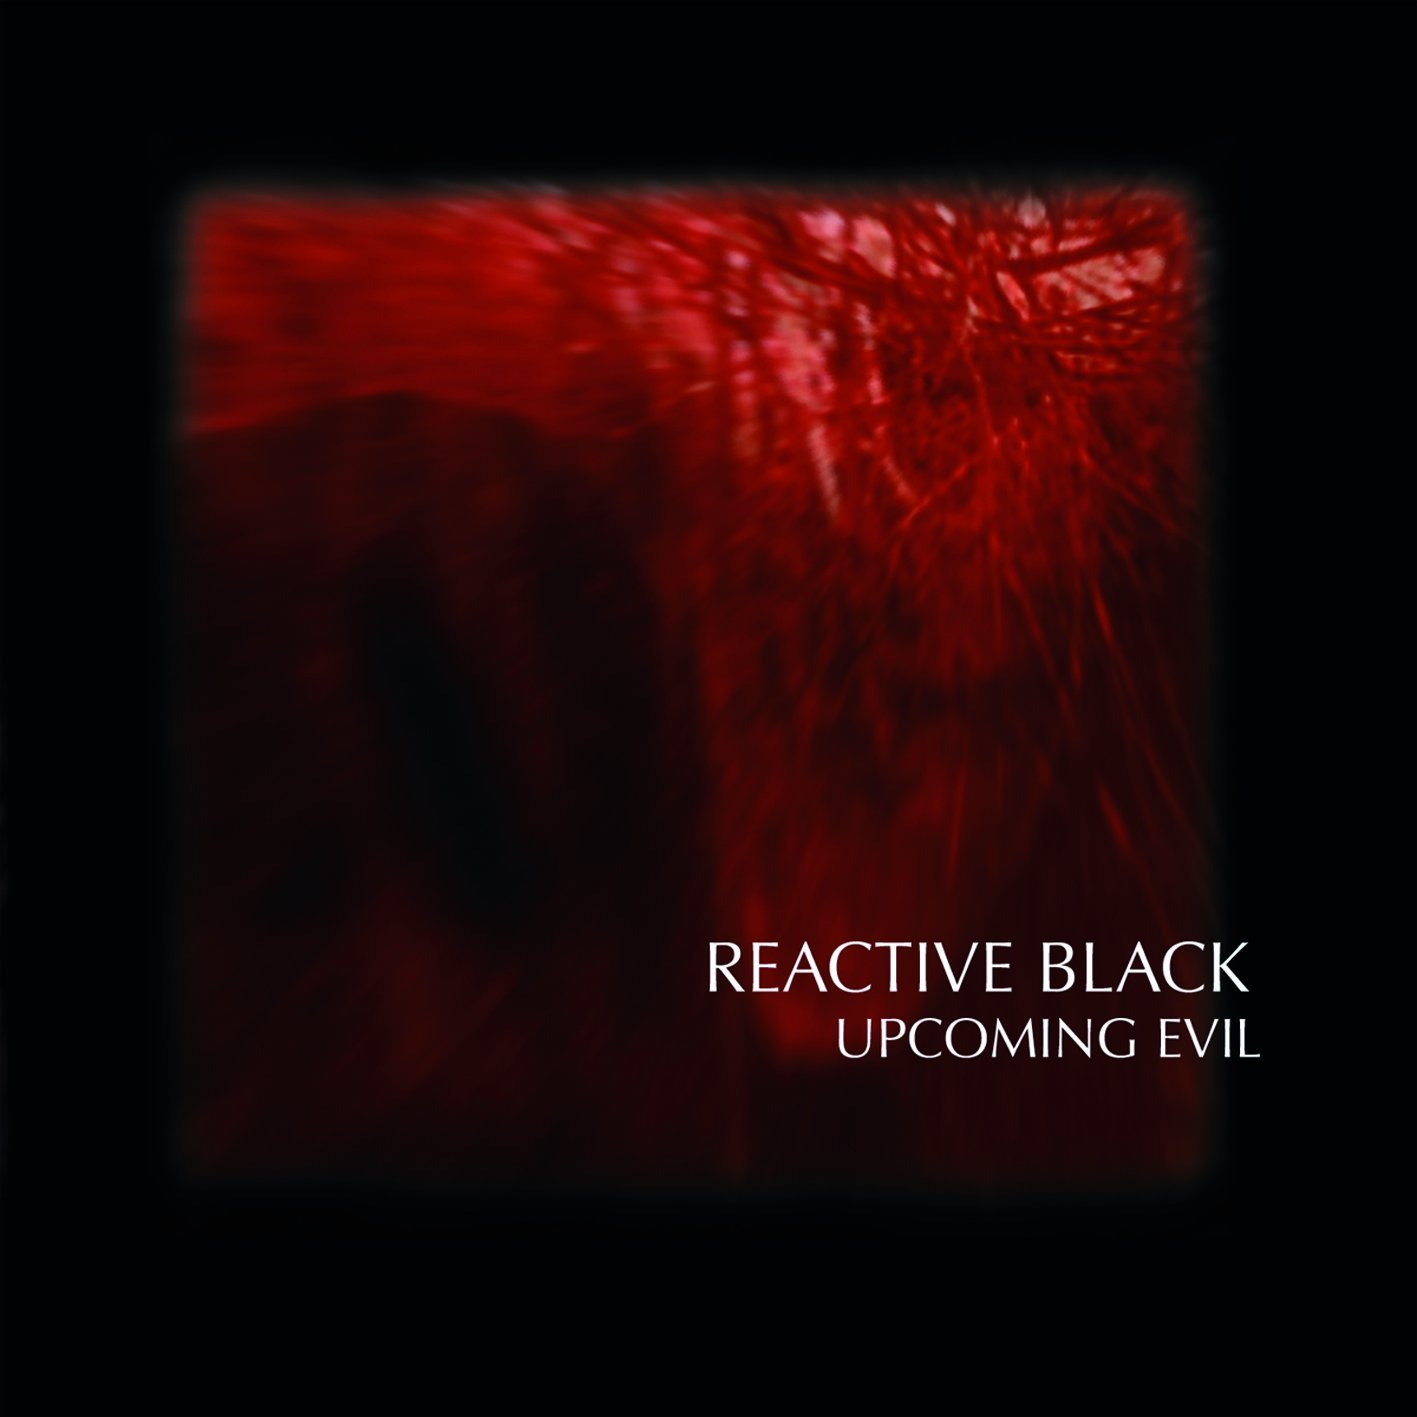 Reactive Black: Upcoming Evil (2008) Book Cover